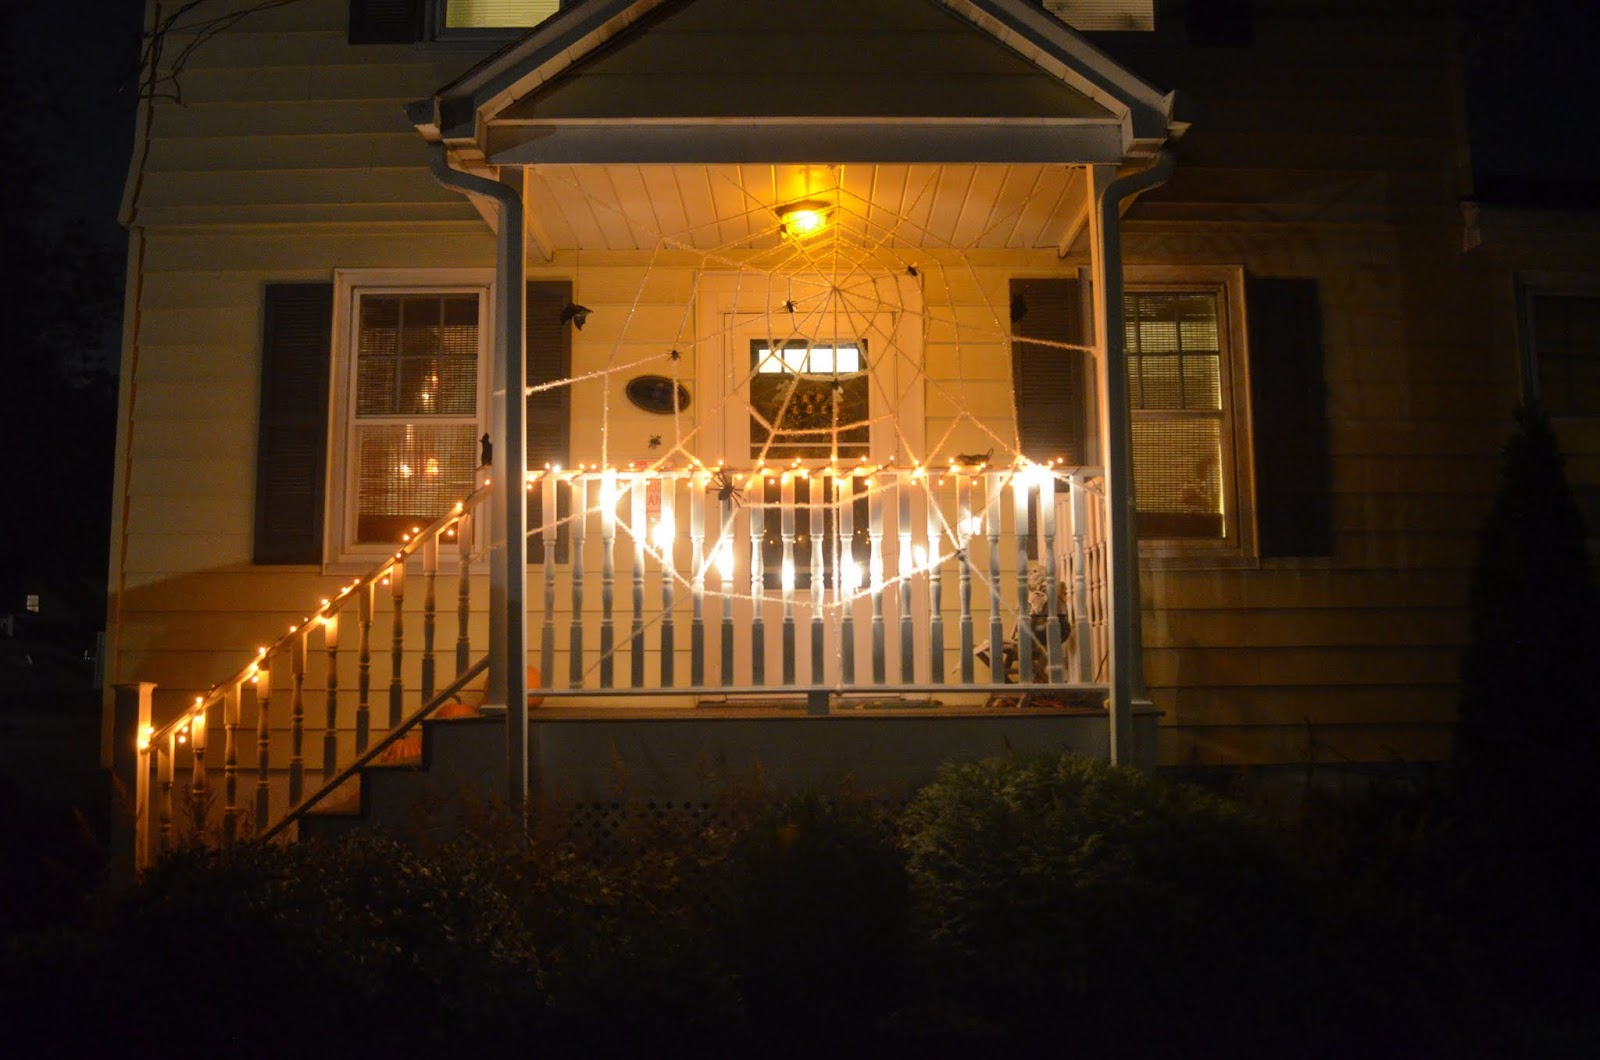 up by an orange bulb in our porch light a new small strand of orange halloween lights wrapped on the railing and the set of flashing skeleton lights